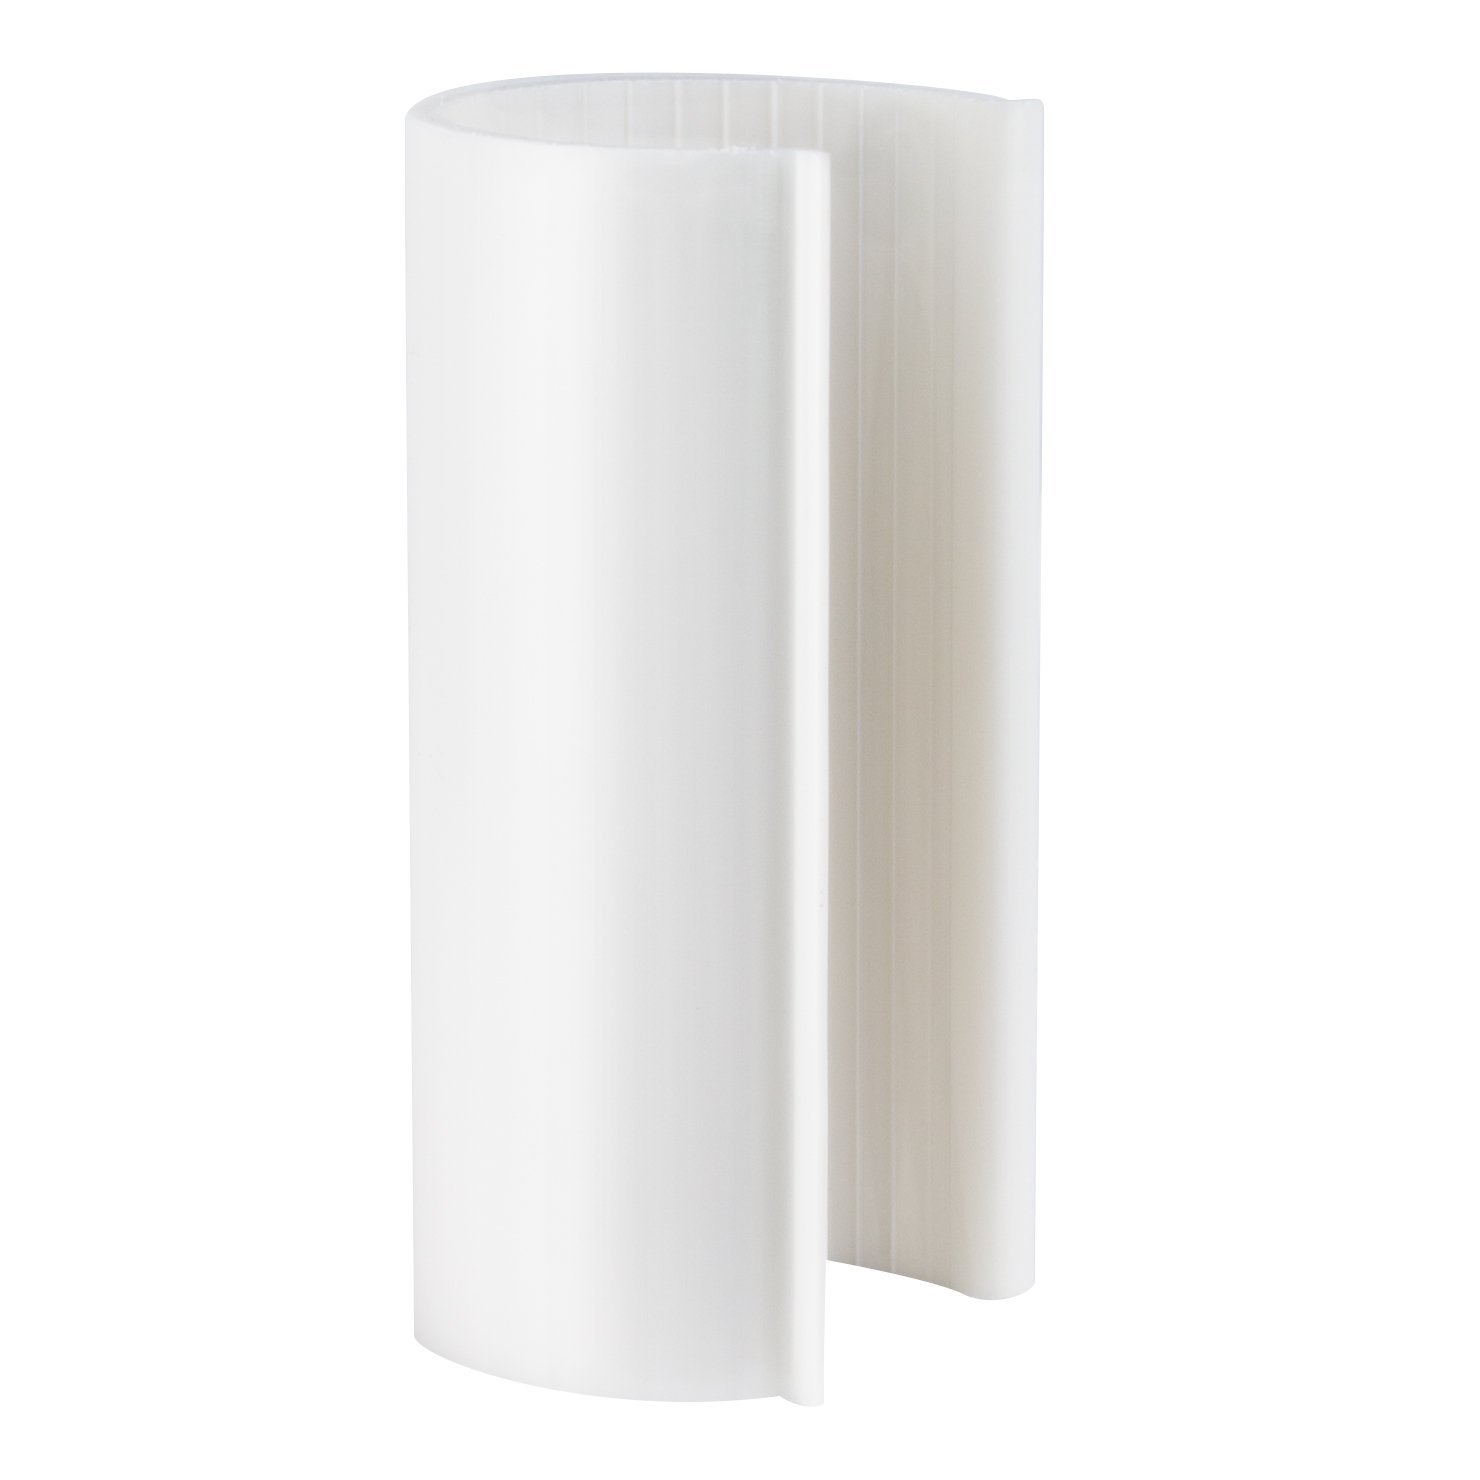 EZ White Snap Clamp 1-1/2 Inch X 4 Inches Wide for 1-1/2 Inch PVC Pipe 10 Per Bag